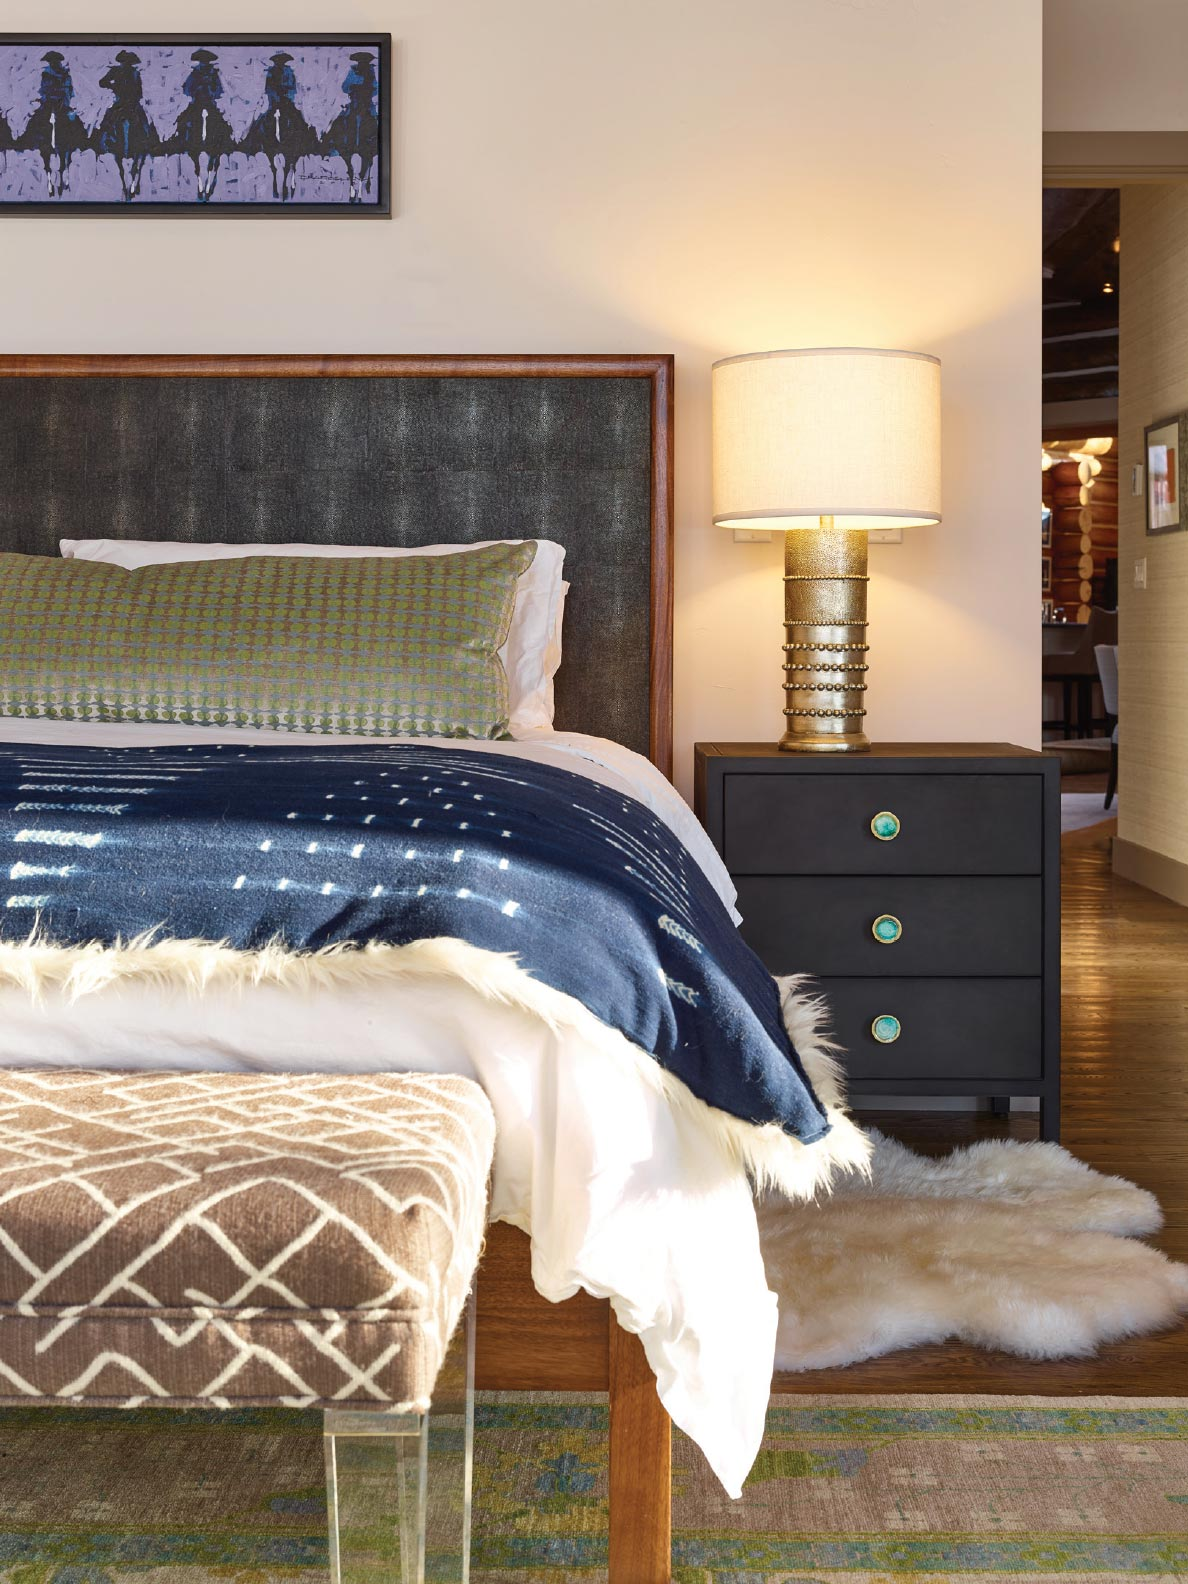 Furnish Your Dreams- Jackson Hole Bed